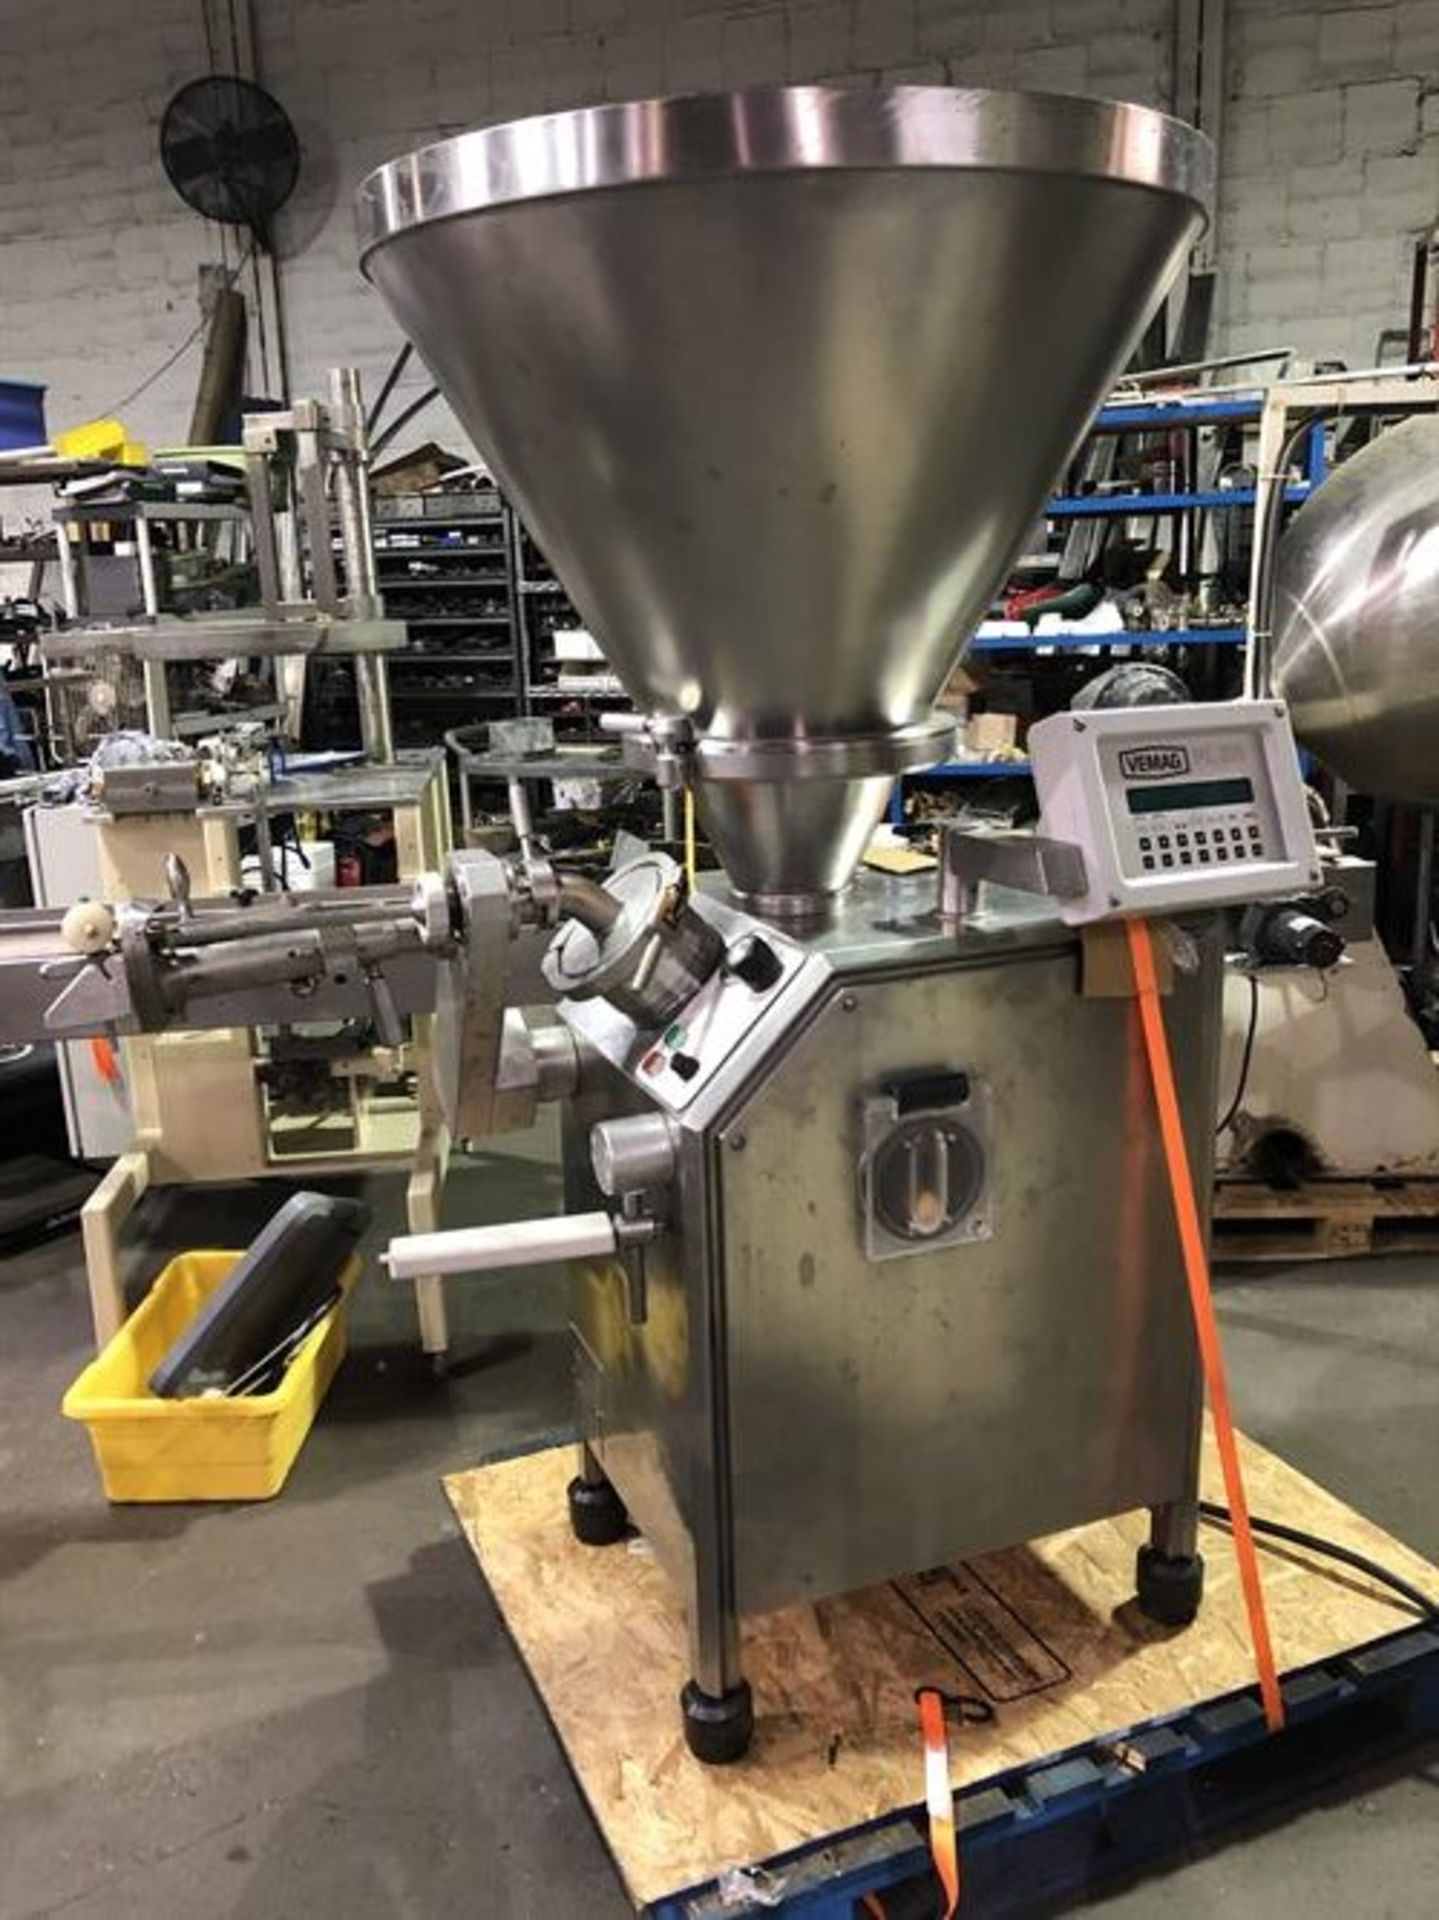 Vemag Robot 500 Stainless Steel Vacuum Stuffer - Machine has been completely reconditioned - PC - Image 12 of 31